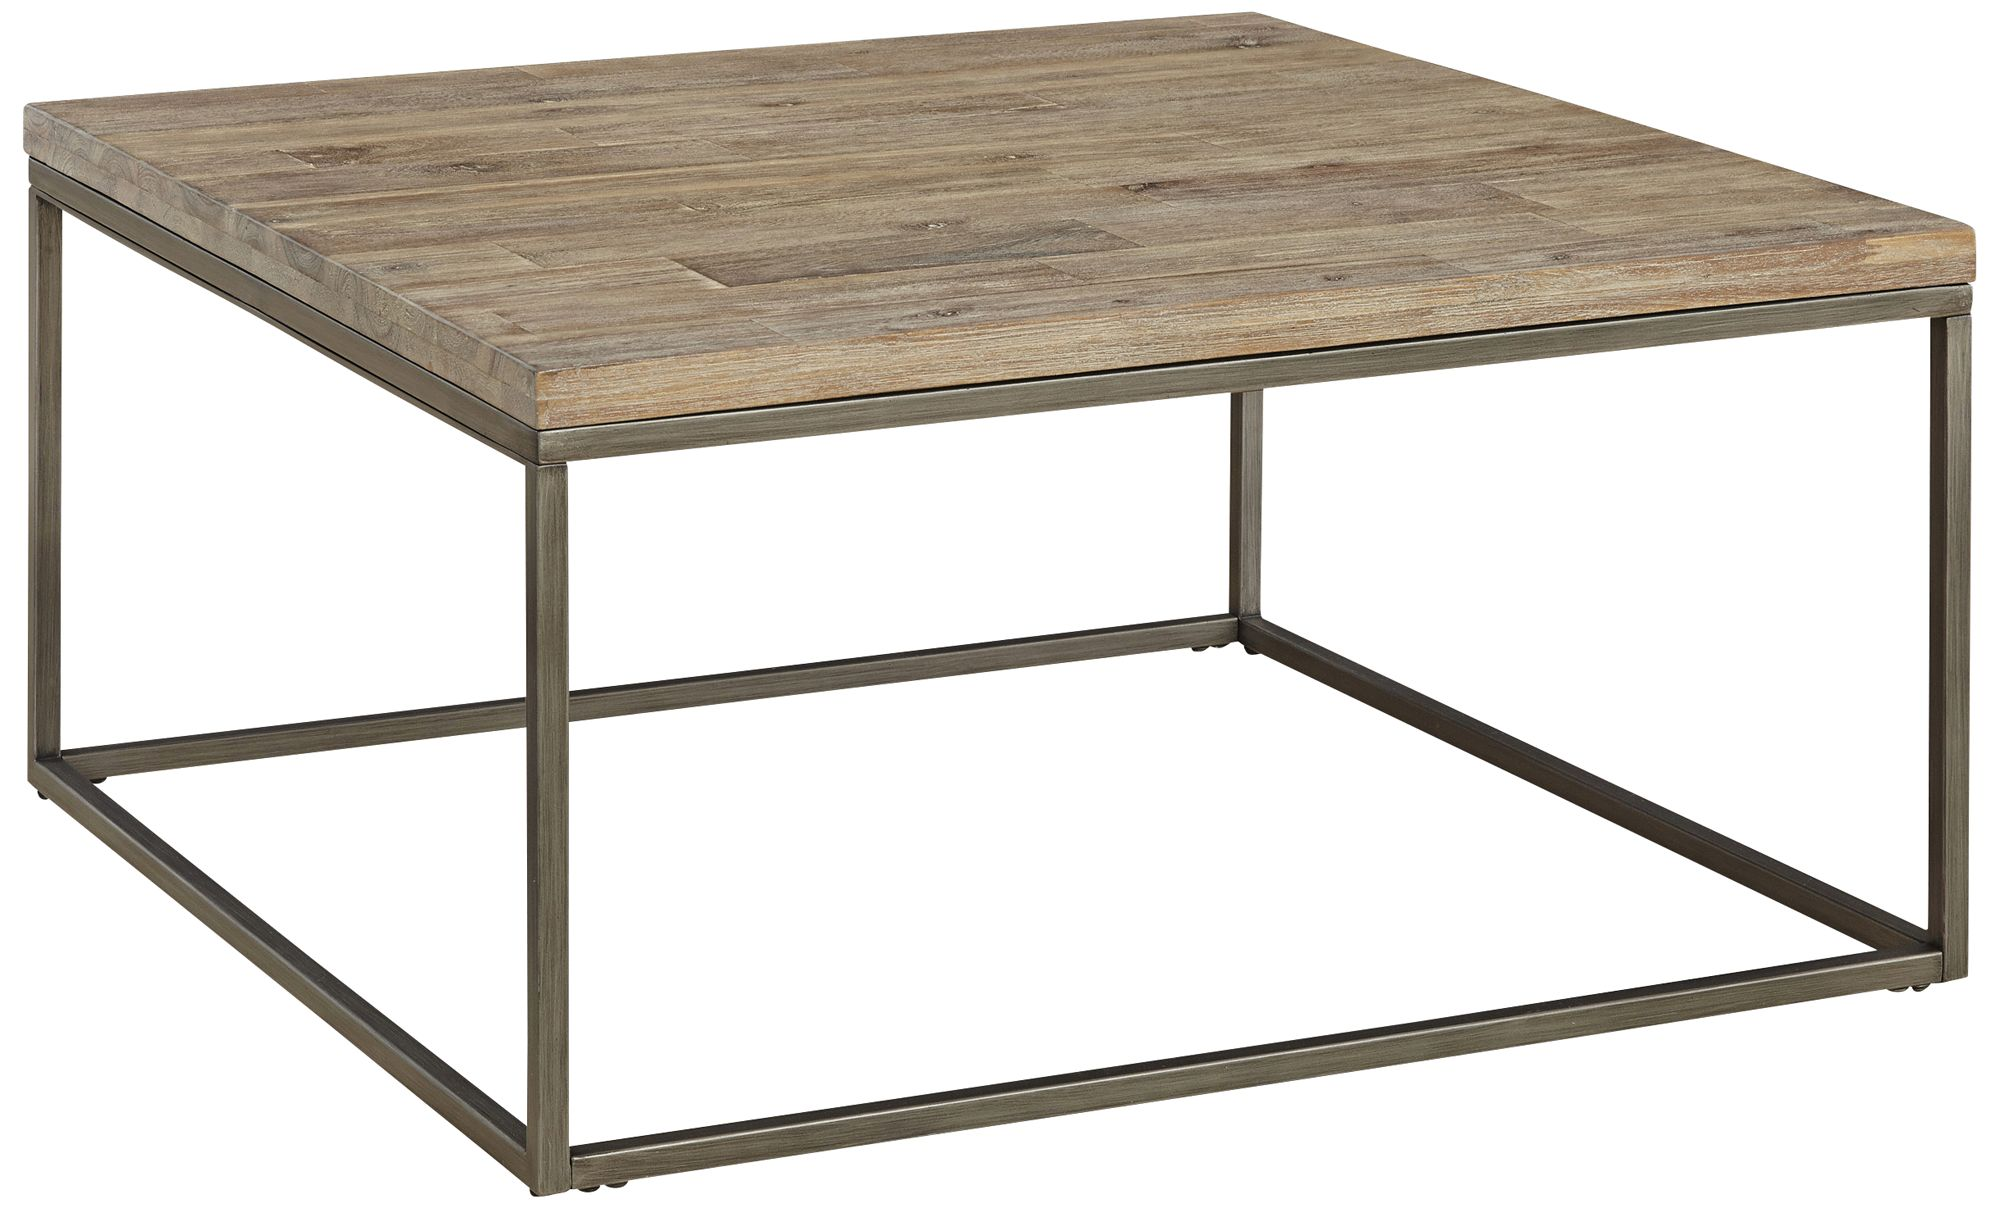 Alana Steel And Acacia Wood Top Square Coffee Table